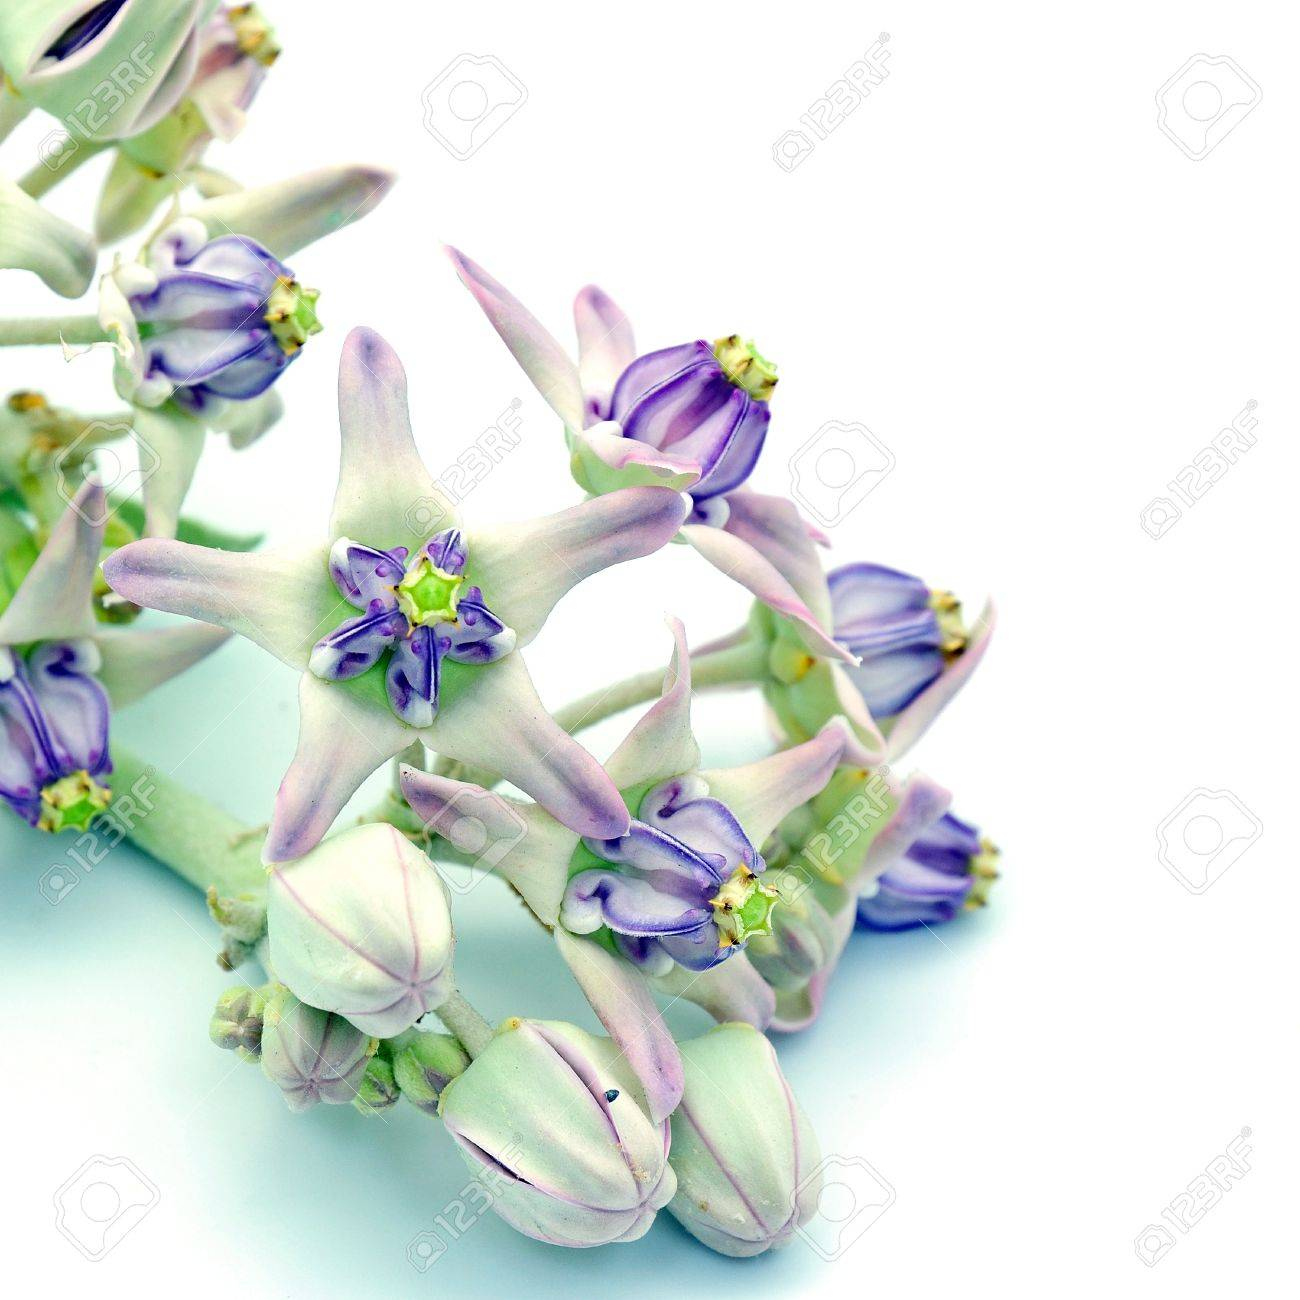 Multicolor With White And Purple Flower Crown Flower Giant Stock